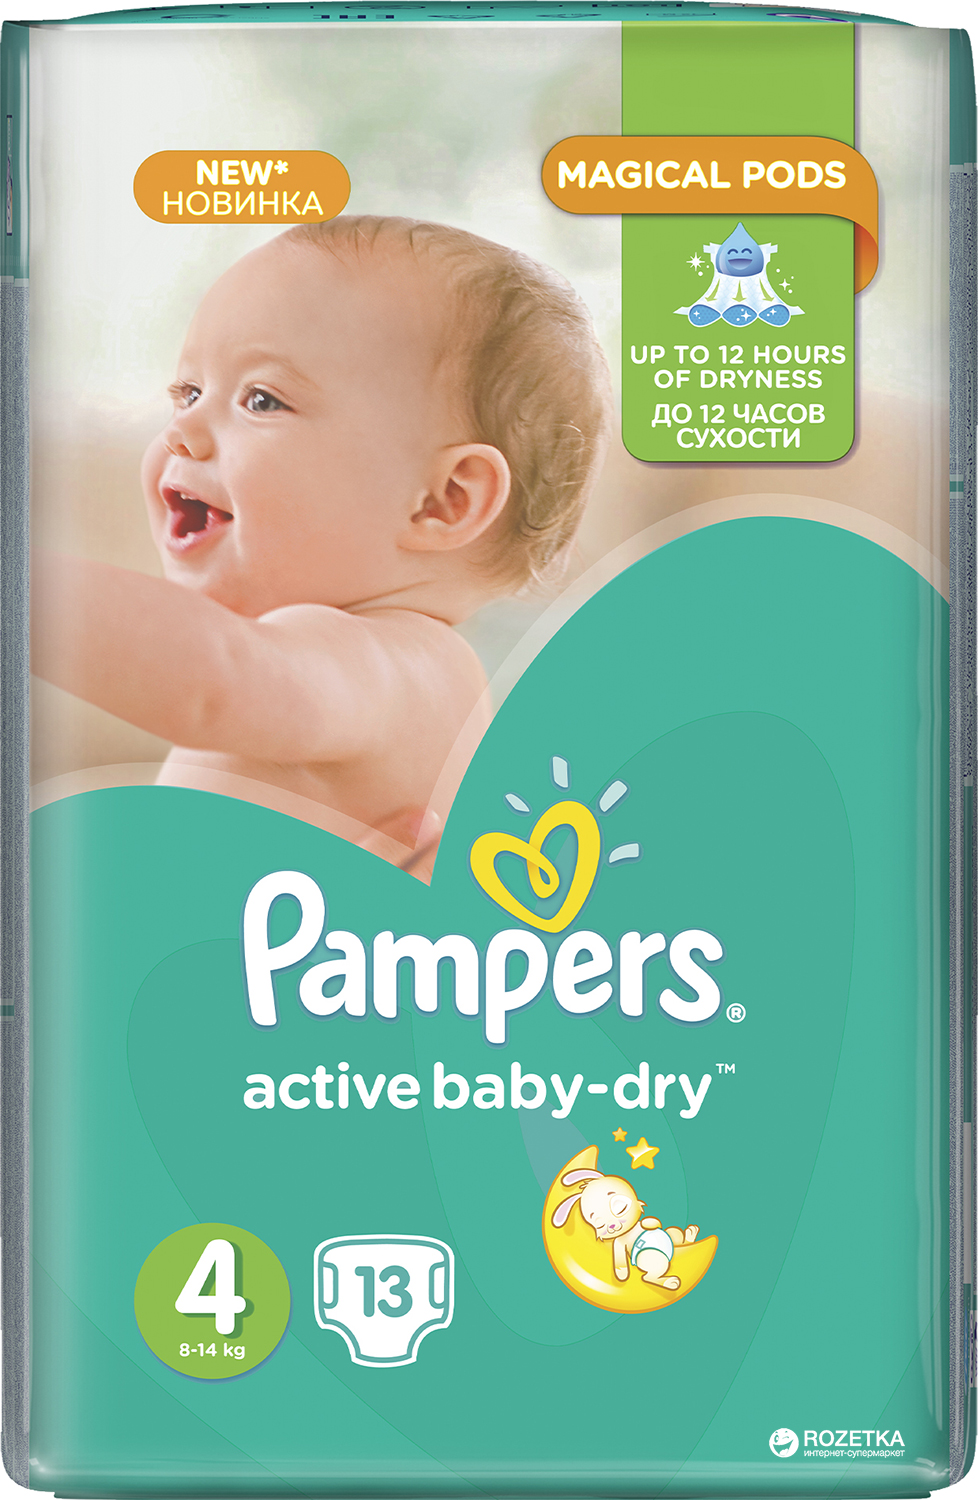 Rozetka.ua   Подгузники Pampers Active Baby-Dry Размер 4 (Maxi) 8-14 ... bc22e5884ff